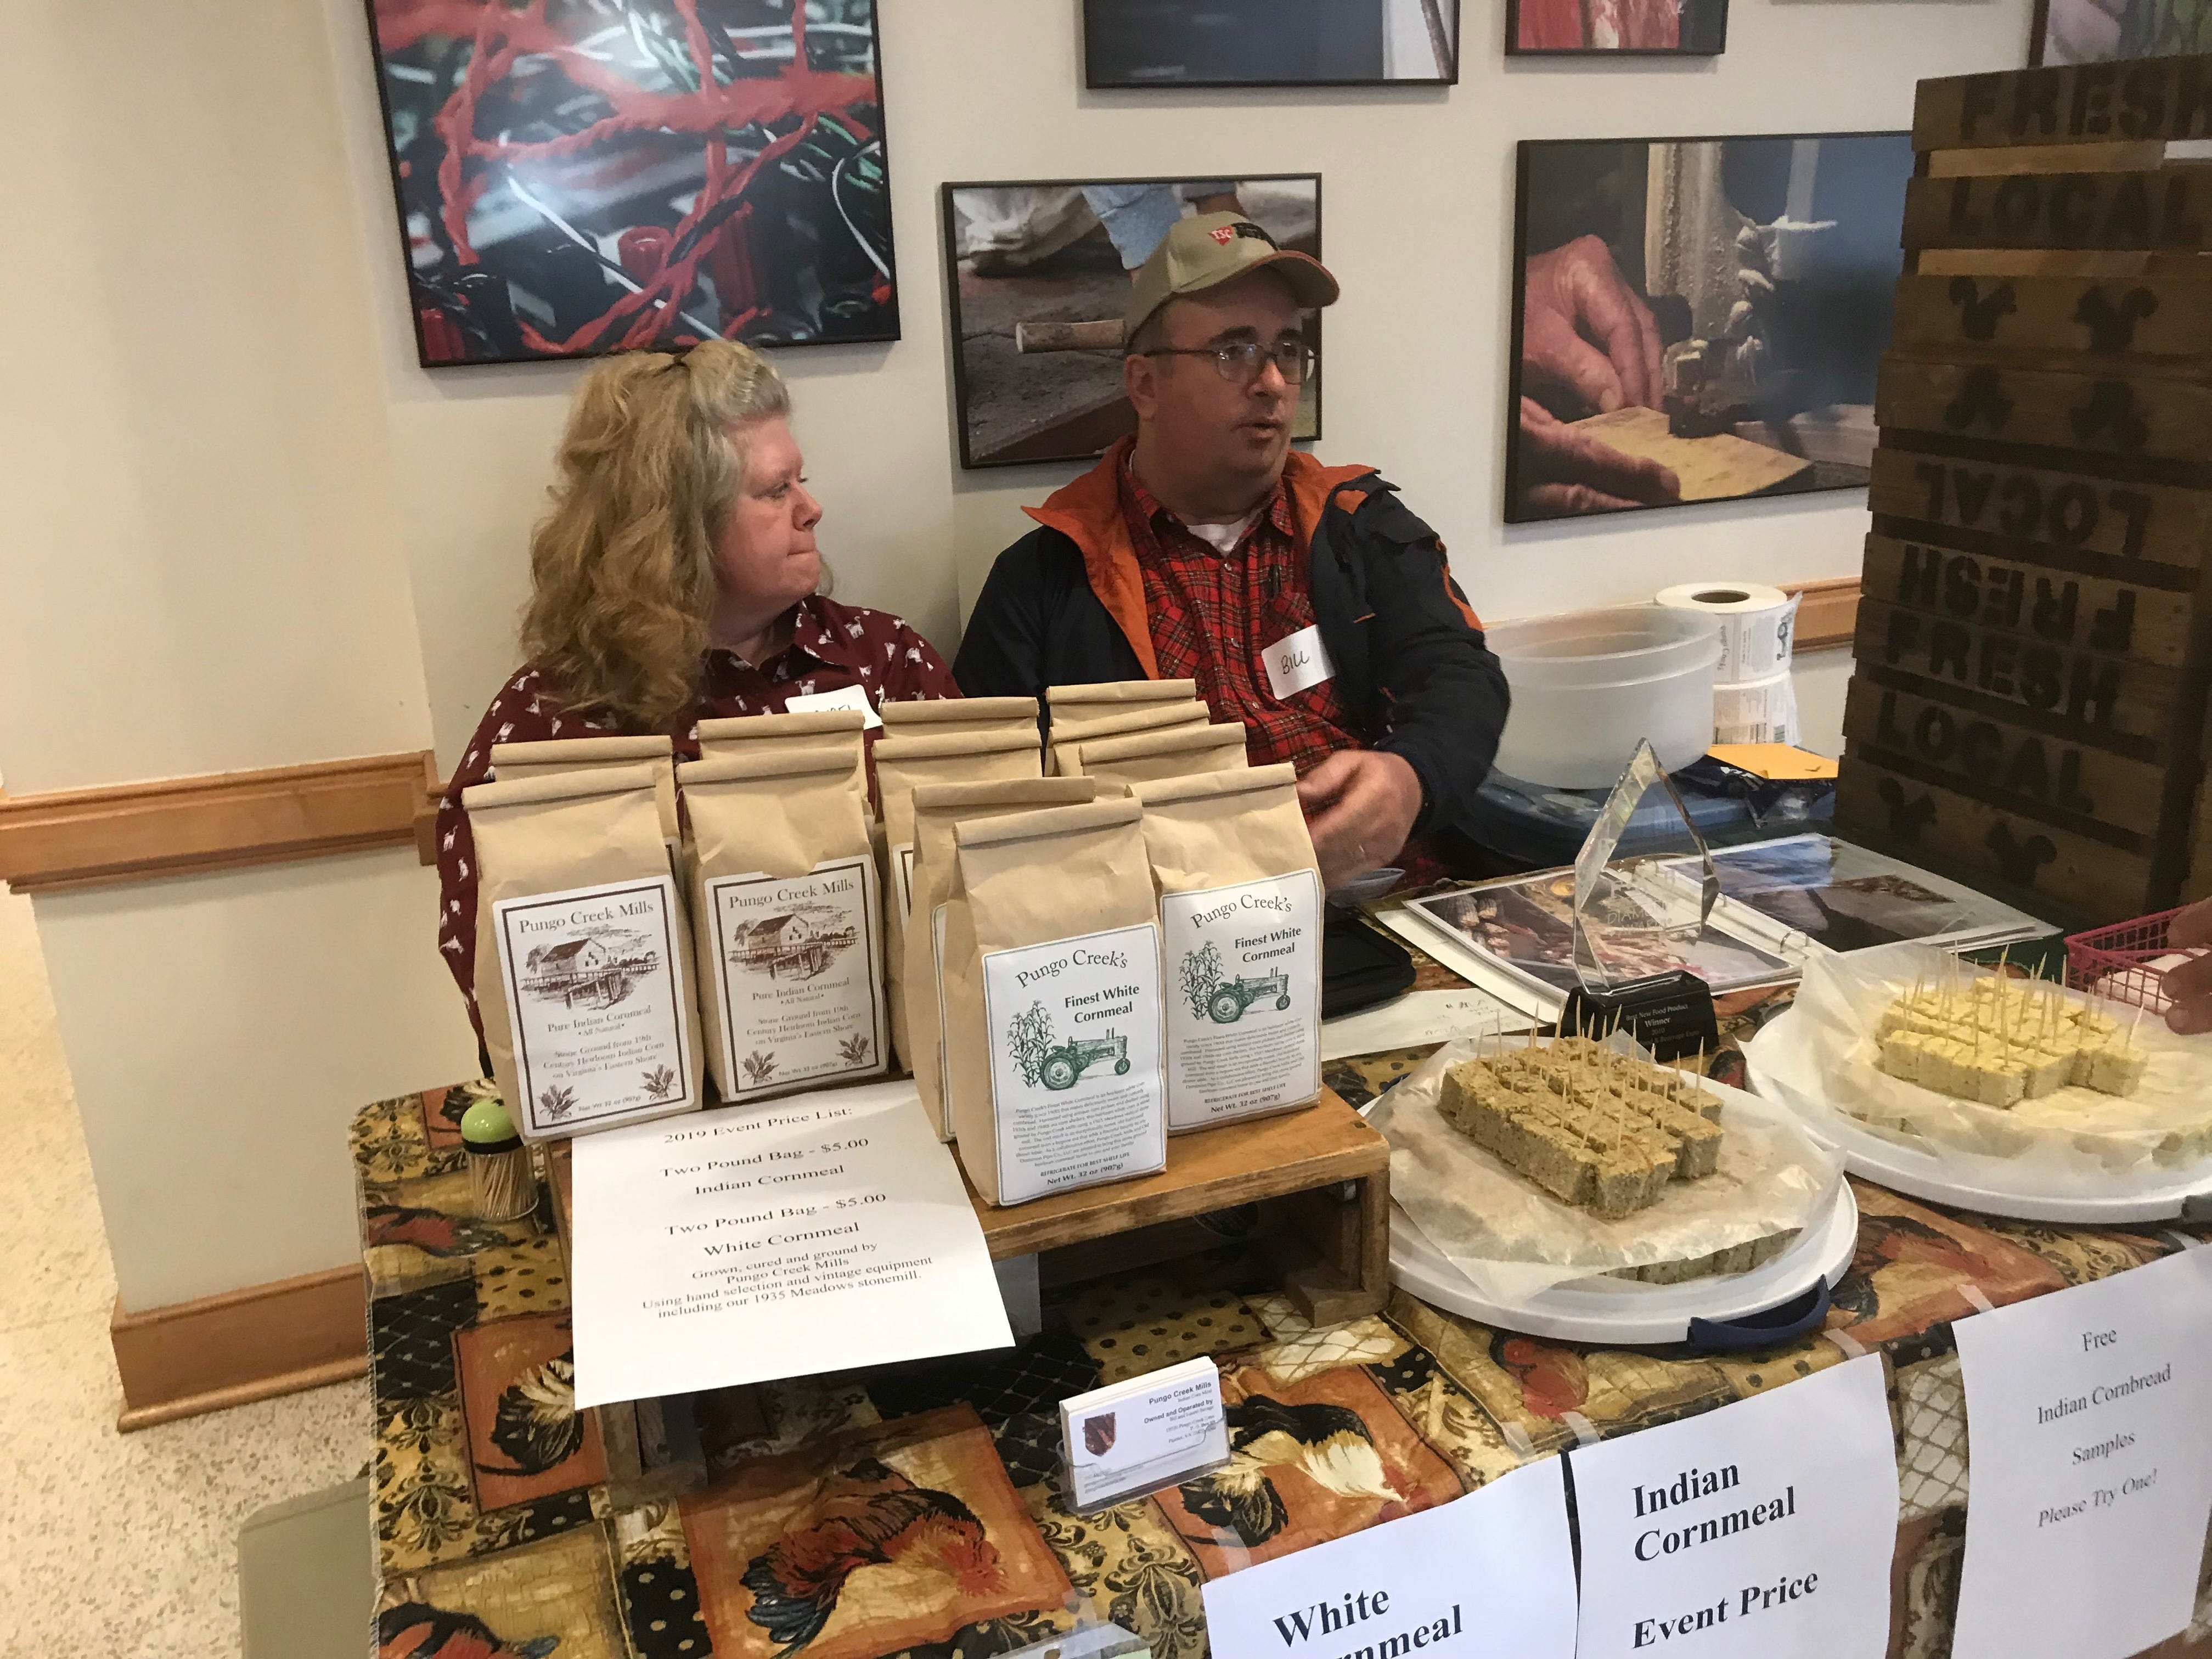 The Savages, owners of Pungo Creek Mill offer samples of cornbread made from heritage varieties of corn grown on their farm in Accomack County, Virginia, at Eastern Shore Community College's Heritage Festival on Saturday, Feb. 23, 2019.